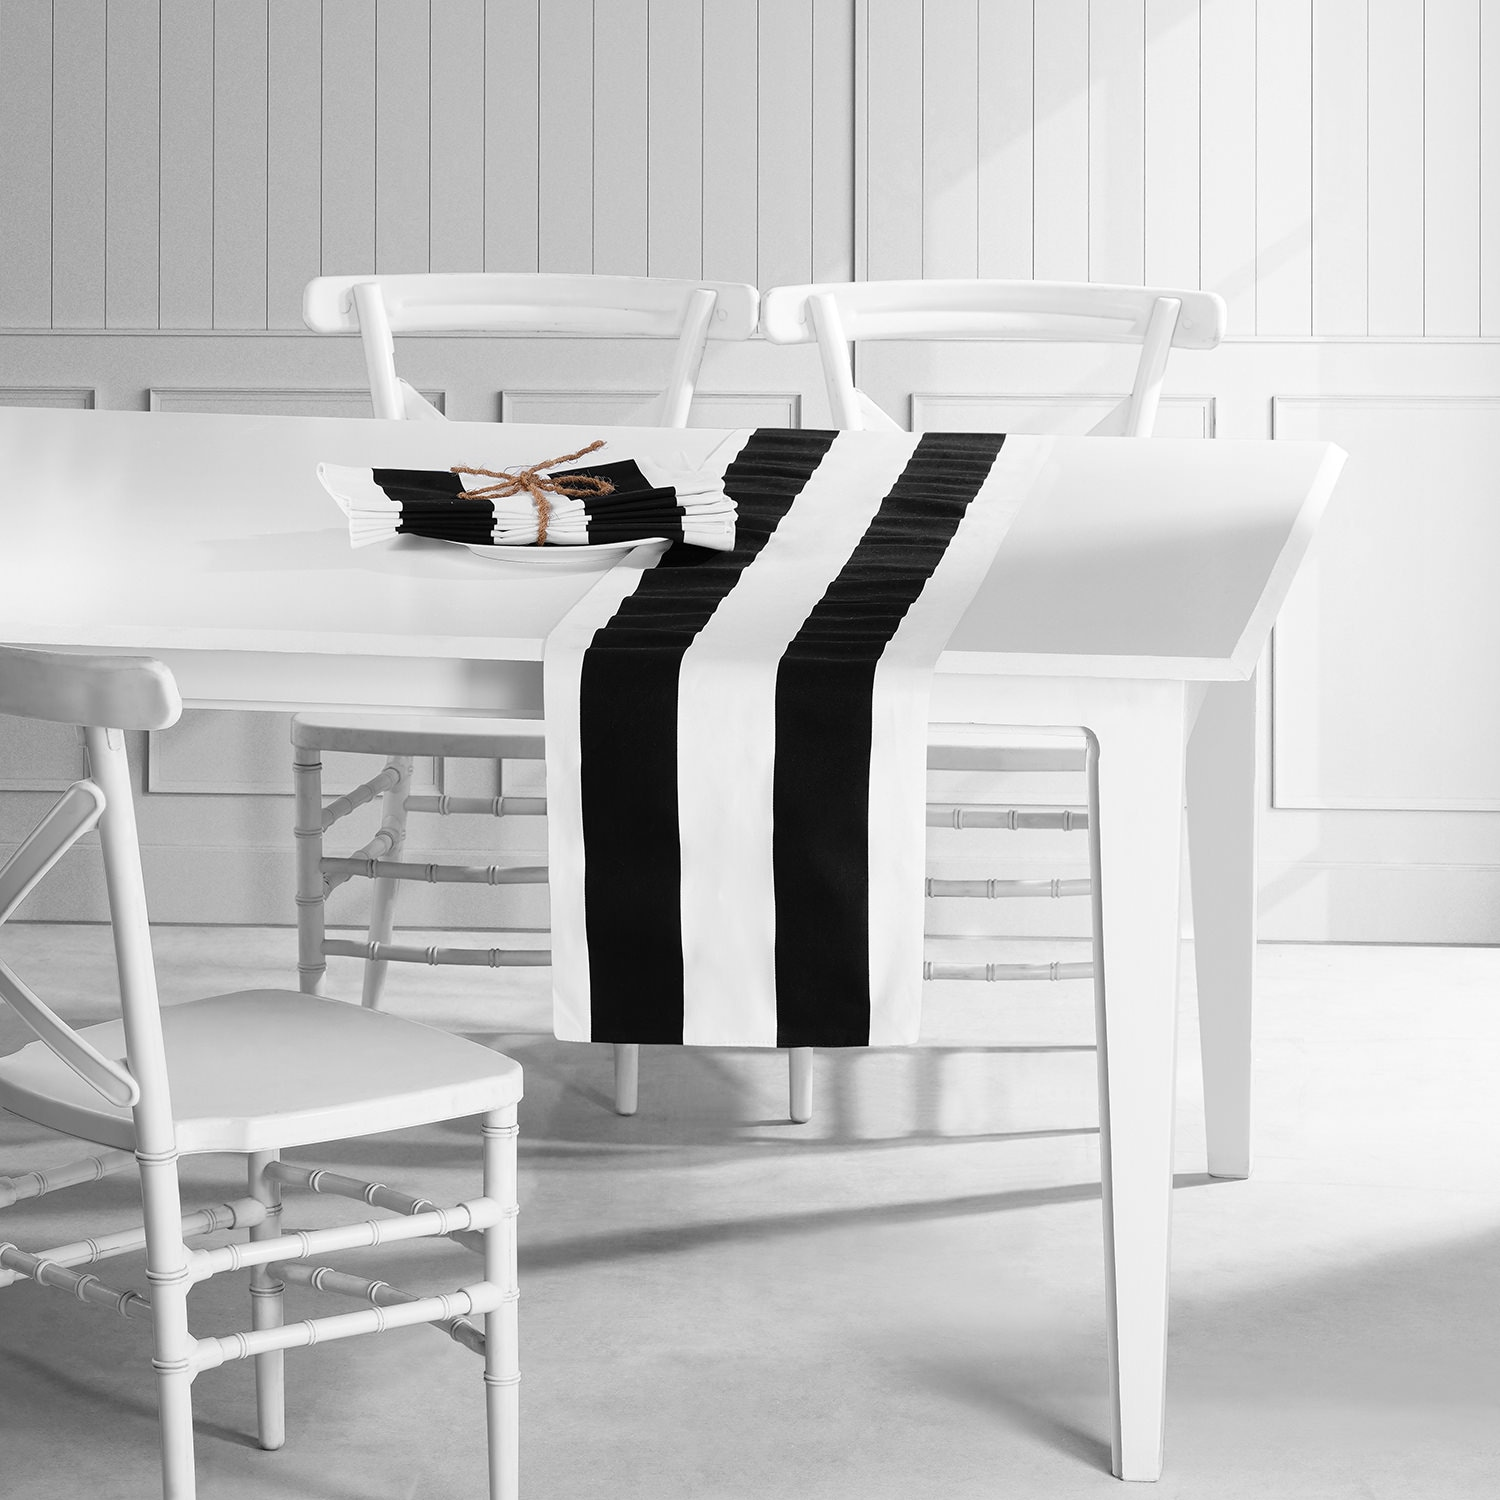 Cabana Black Printed Cotton Table Runner & Placemats